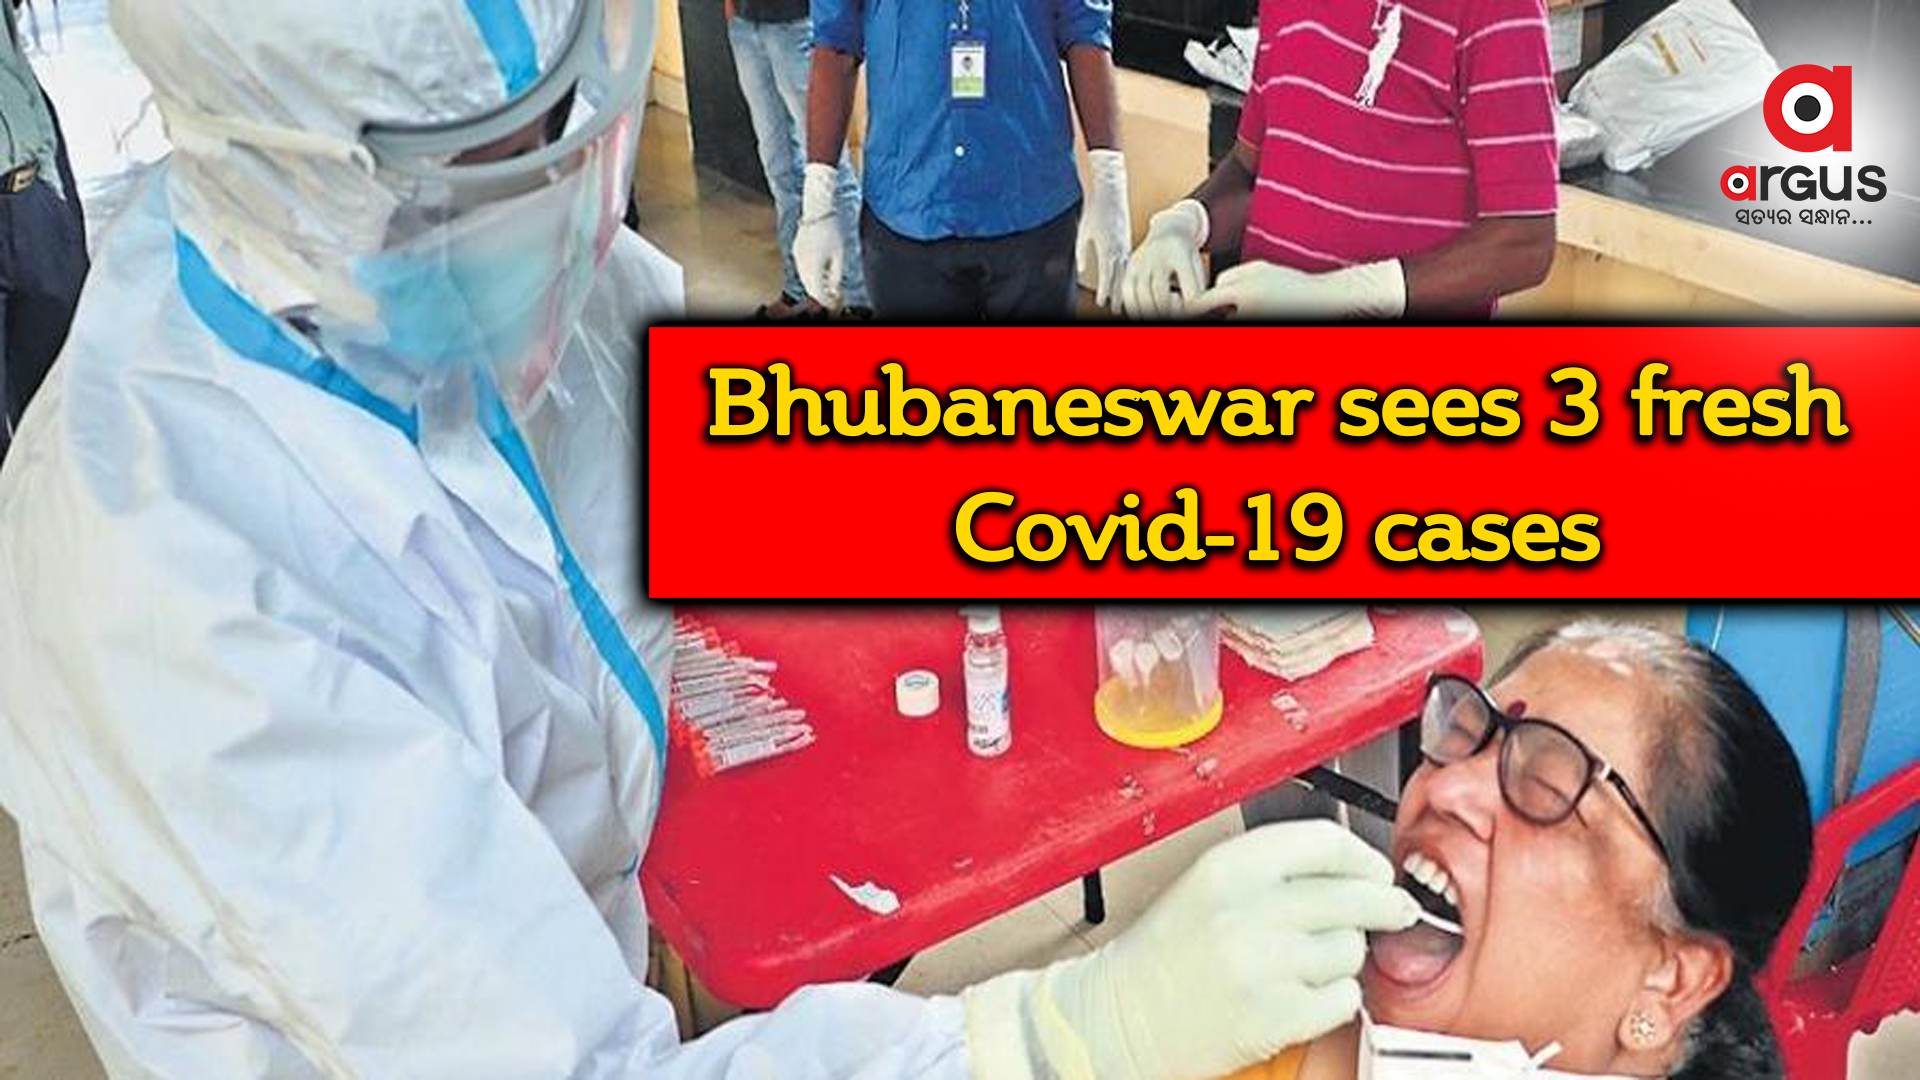 Bhubaneswar reports 3 new Covid-19 cases, 5 recoveries